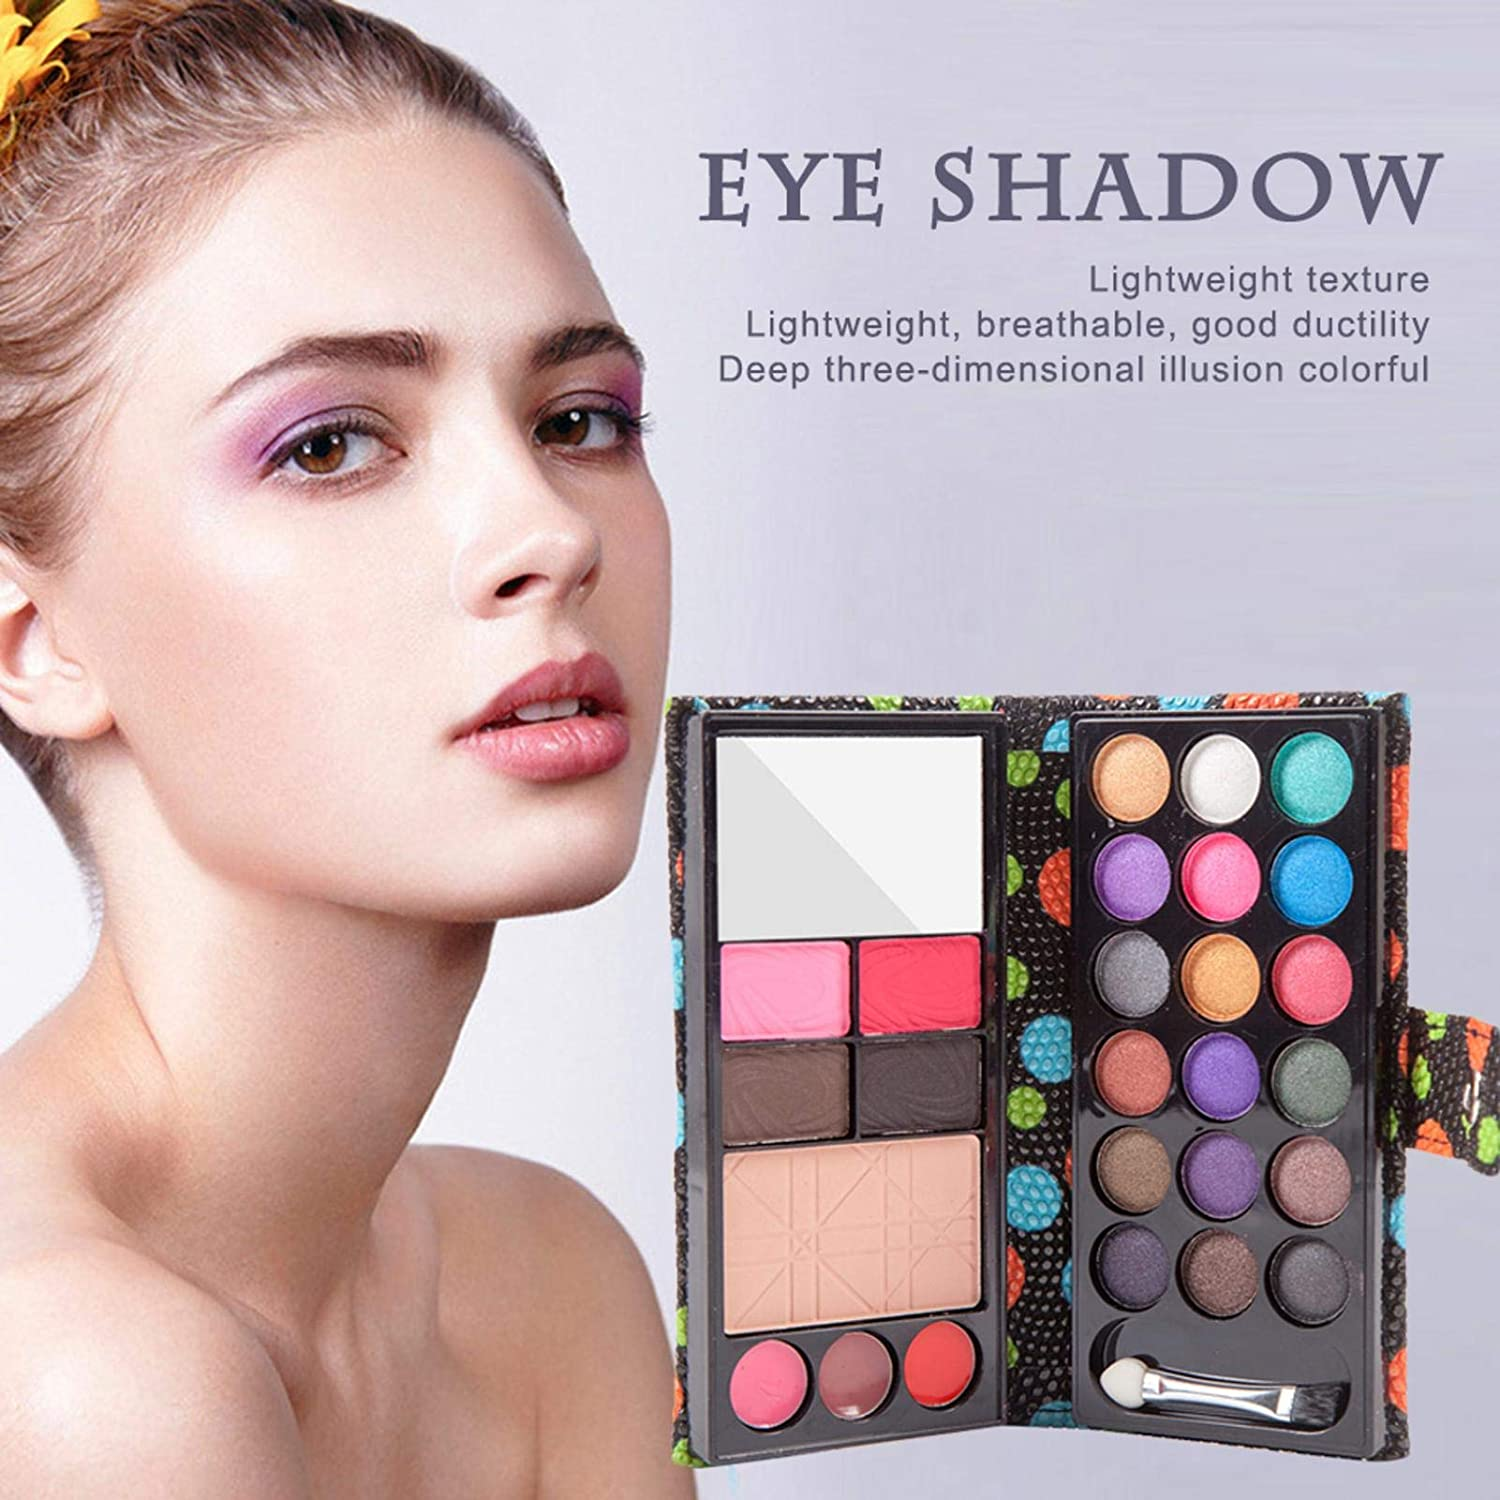 Companion Eyeshadow Palette, 18 Color Matte Natural and Long-Lasting Eye Shadow Makeup Set for Women